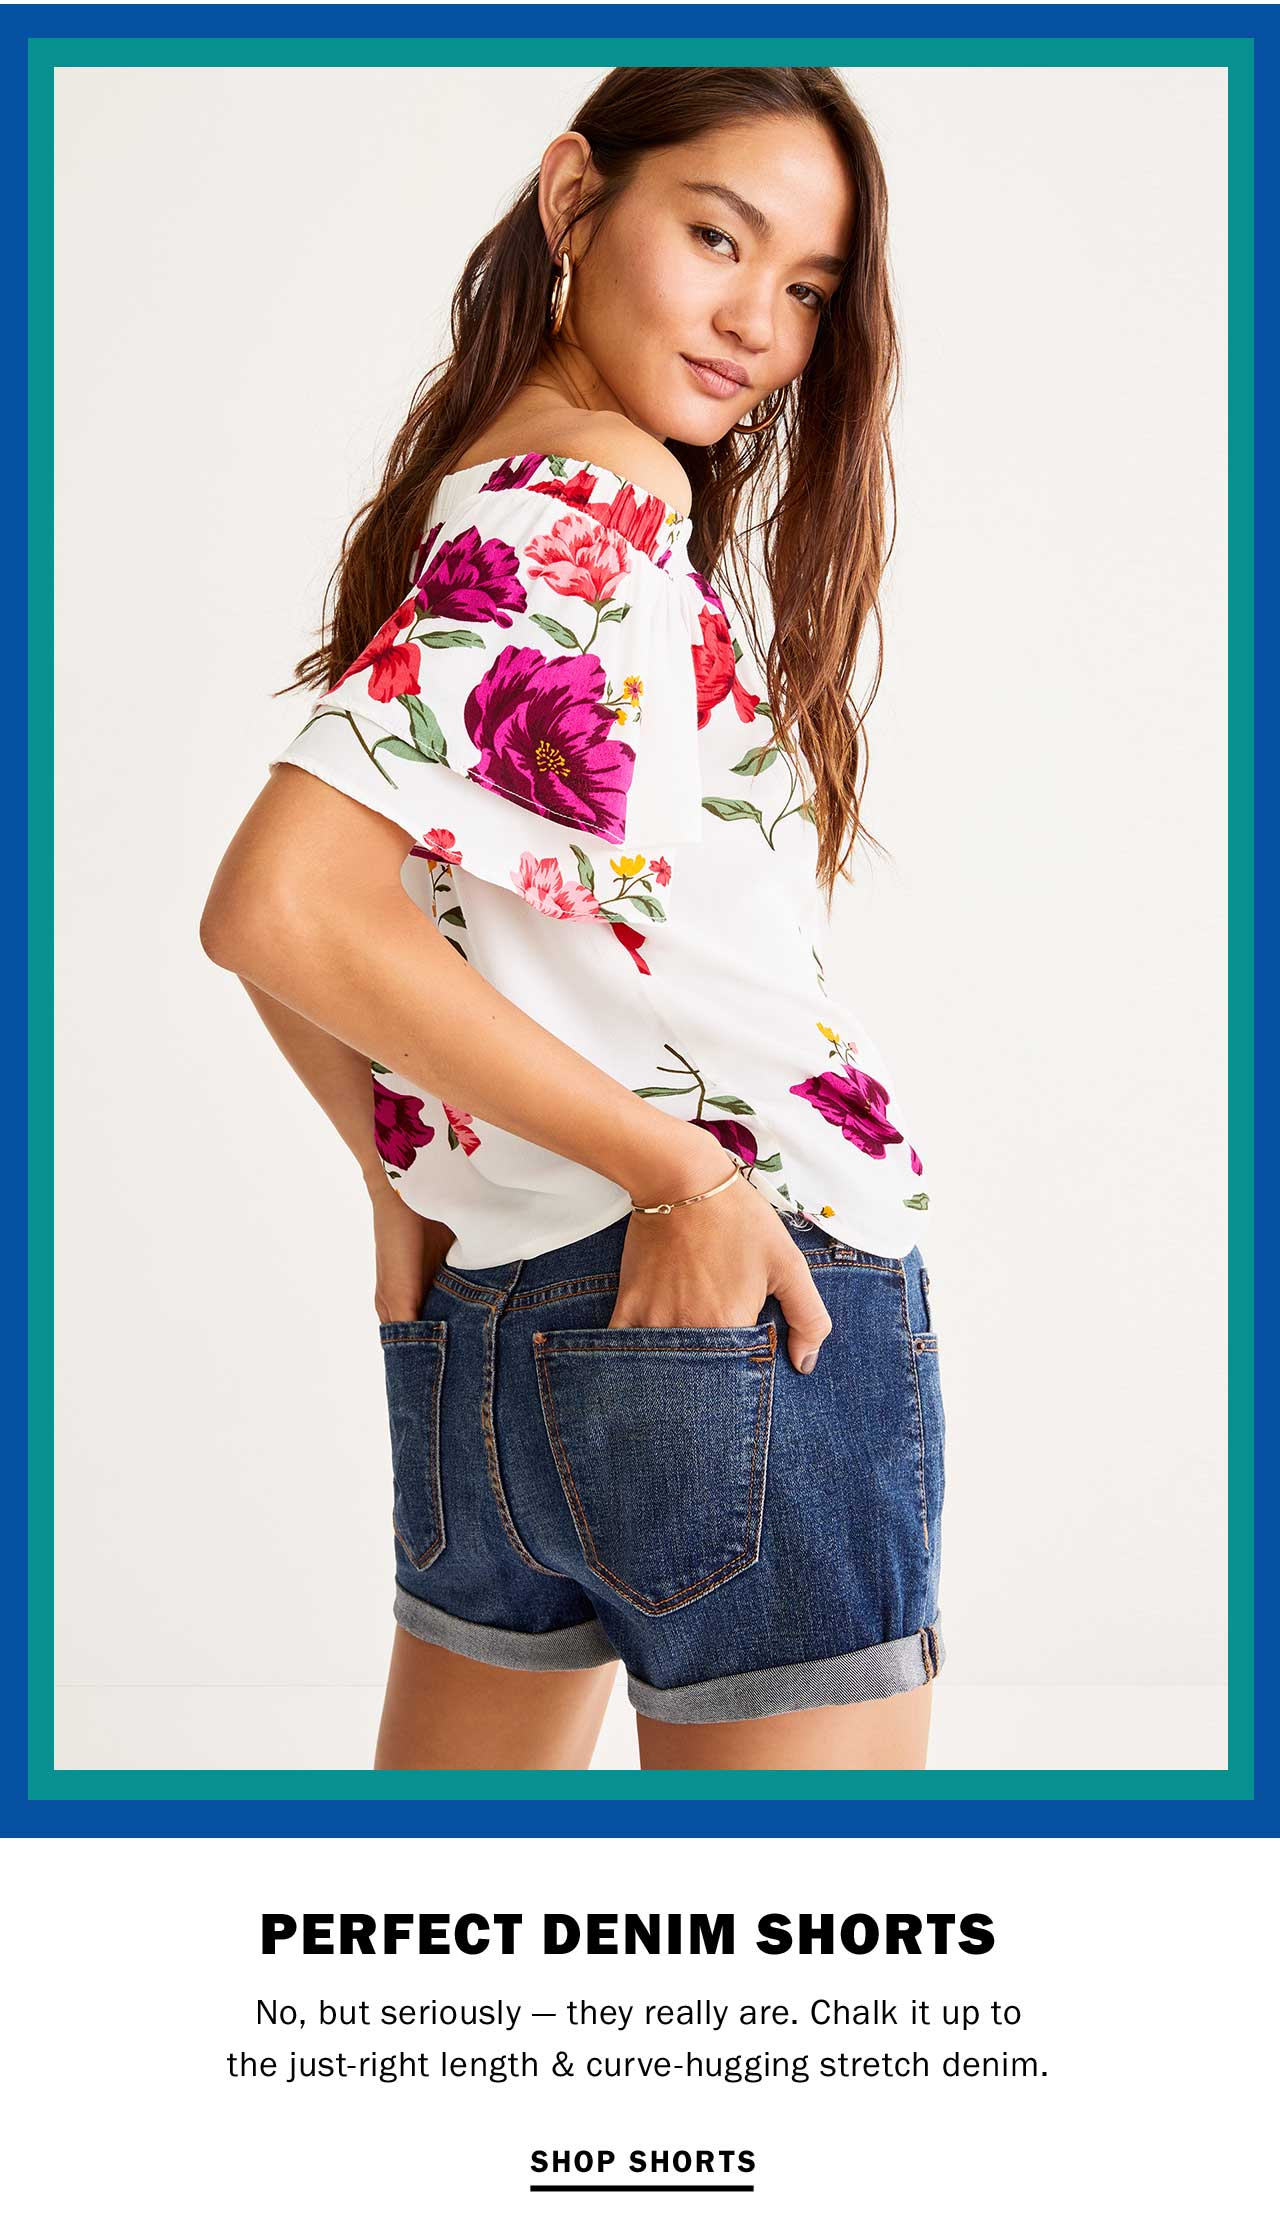 PERFECT DENIM SHORTS | SHOP SHORTS